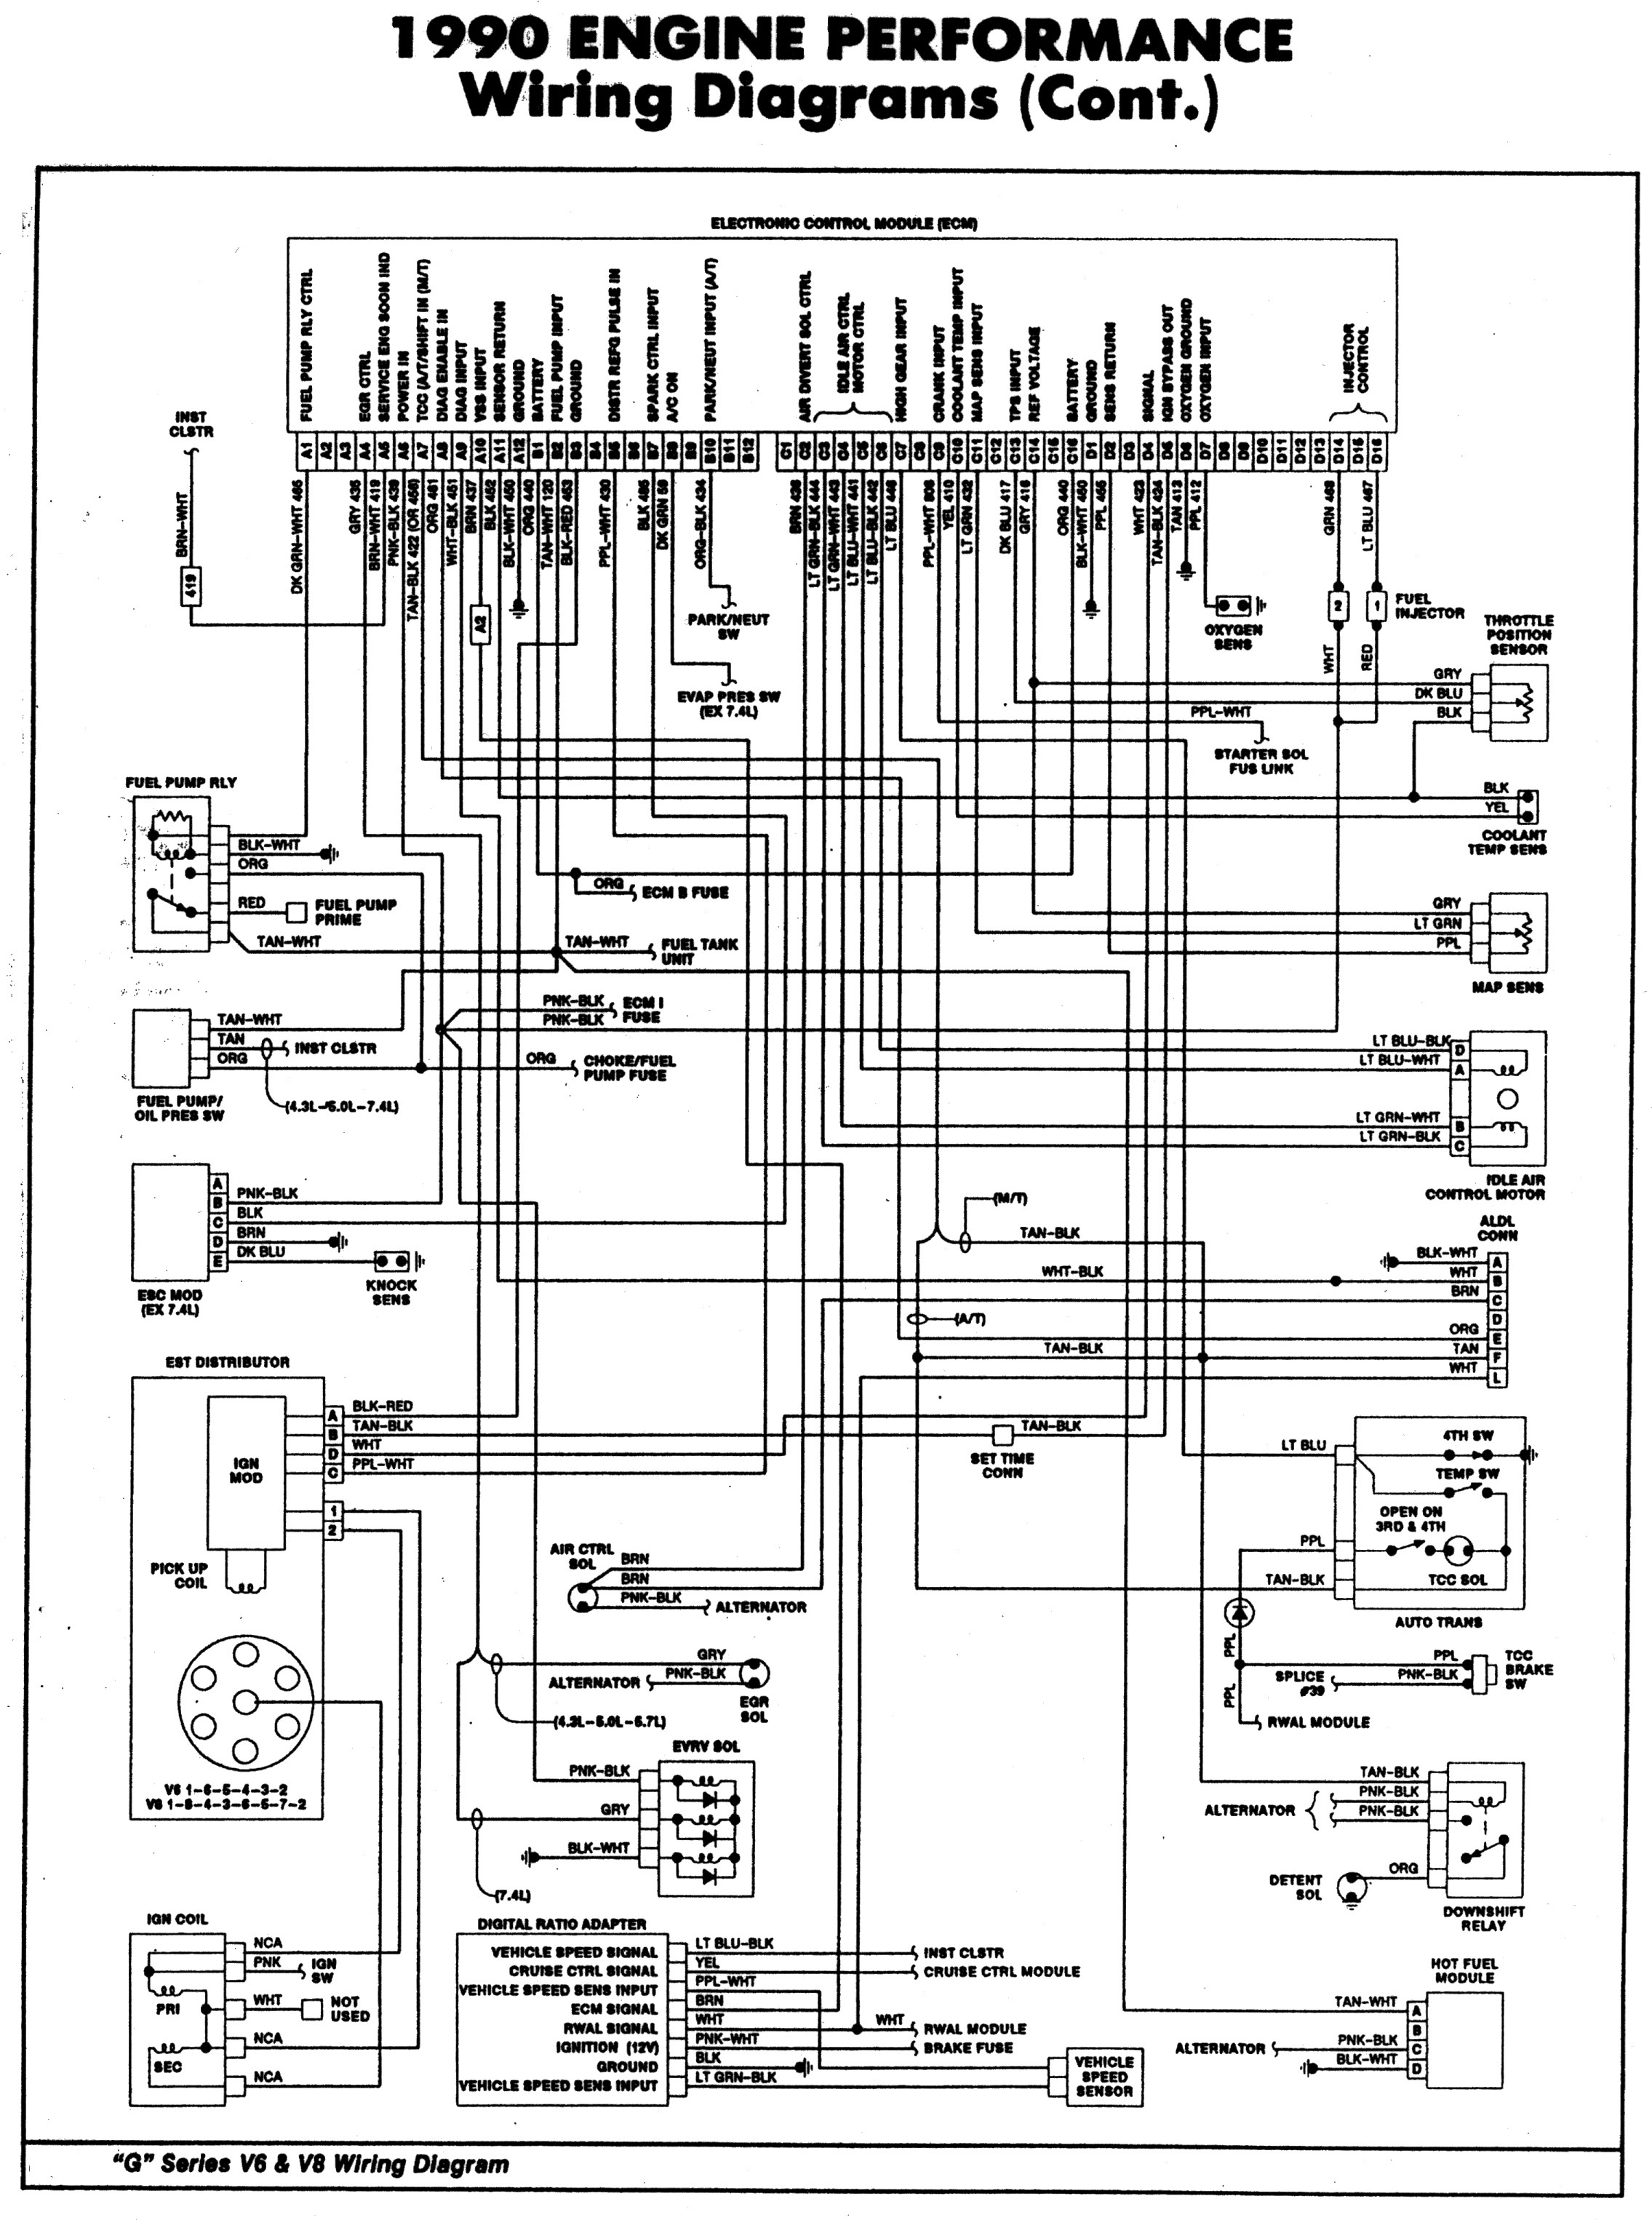 ignitiondiagram 1990 chevy suburban tbi 350 installation land 85 chevy suburban wiring diagram ignitiondiagram 1990 chevy suburban tbi 350 installation land cruiser tech from ih8mud com